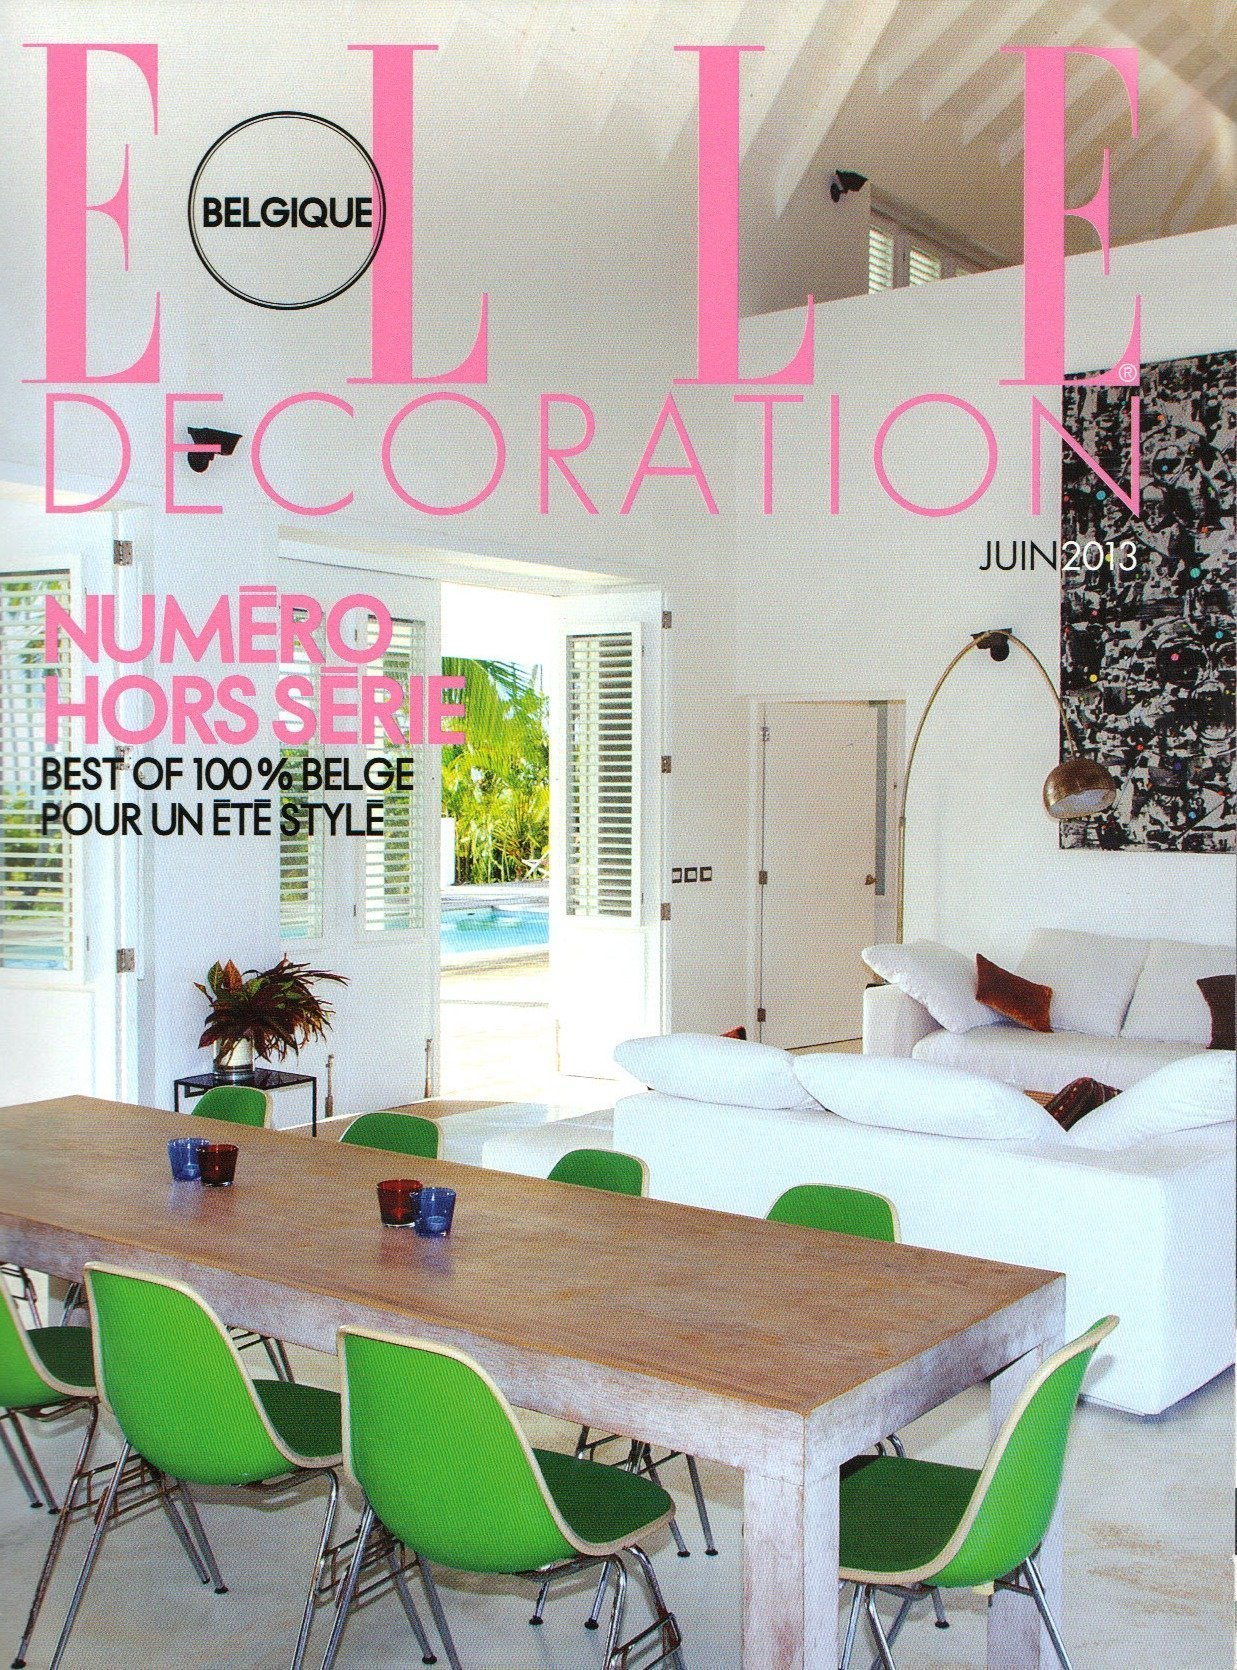 ELLE DECORATION JUNE 2013